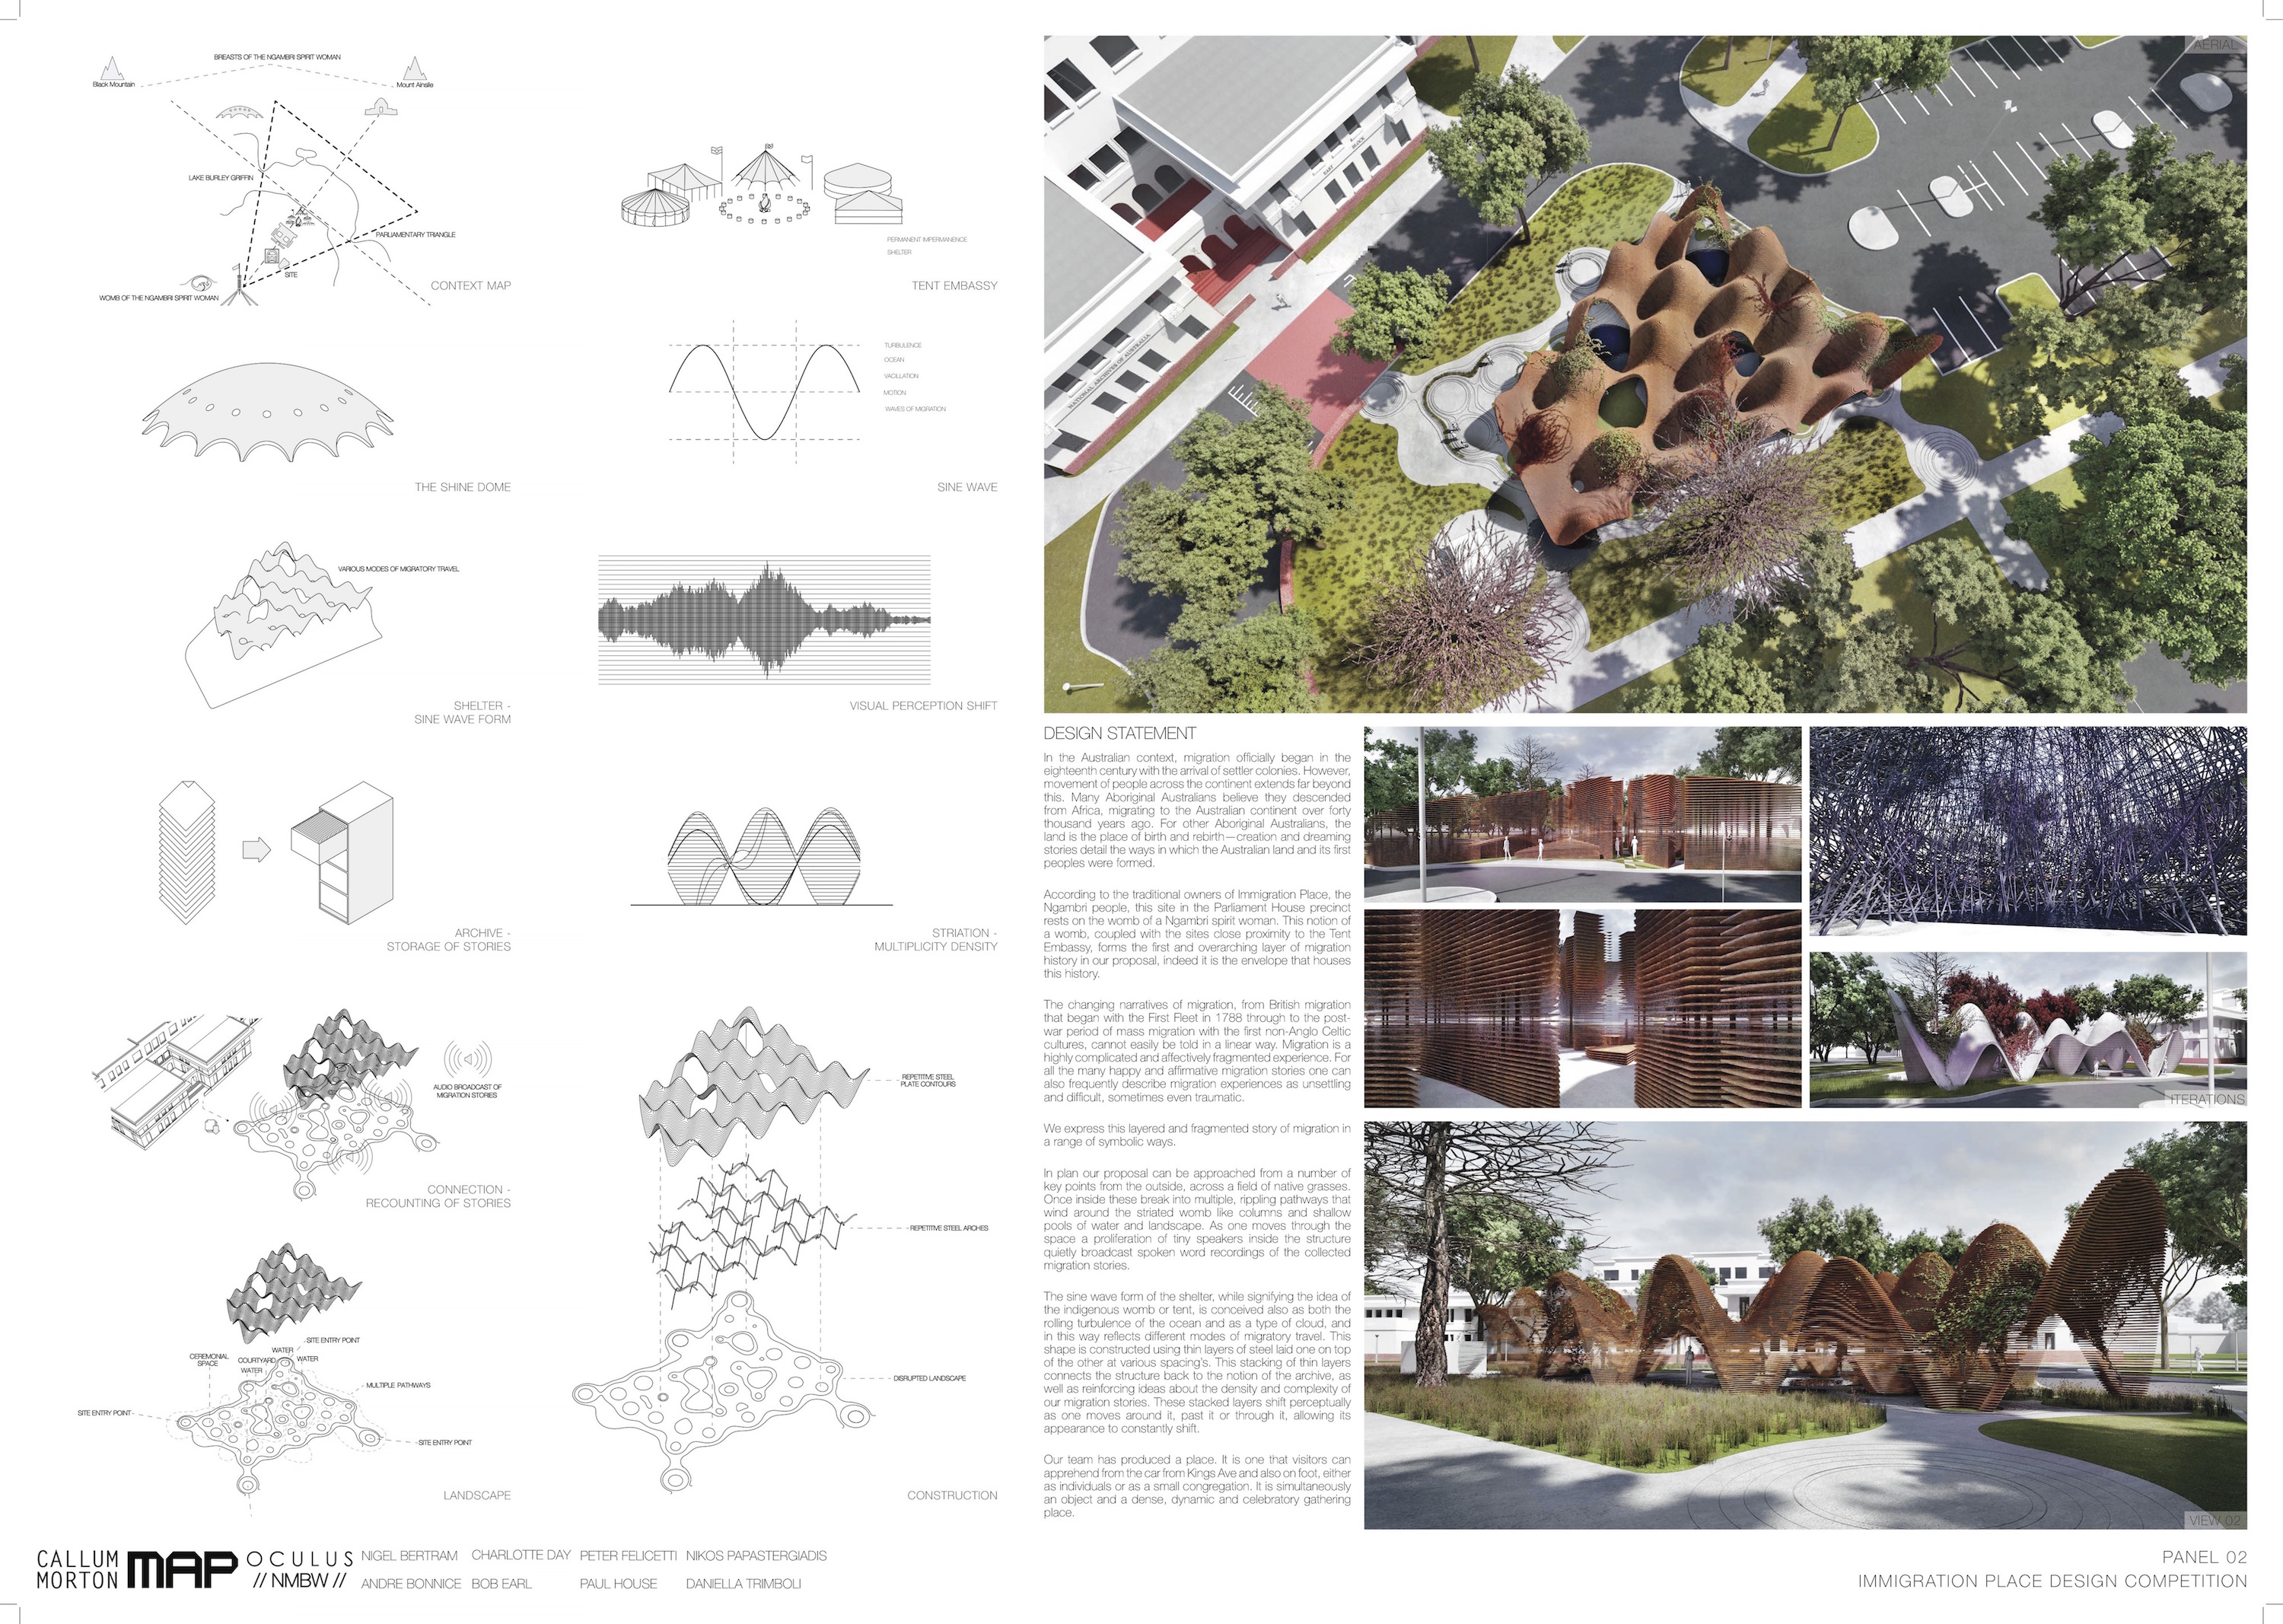 Architecture House Competition competition winner announced : immigration place